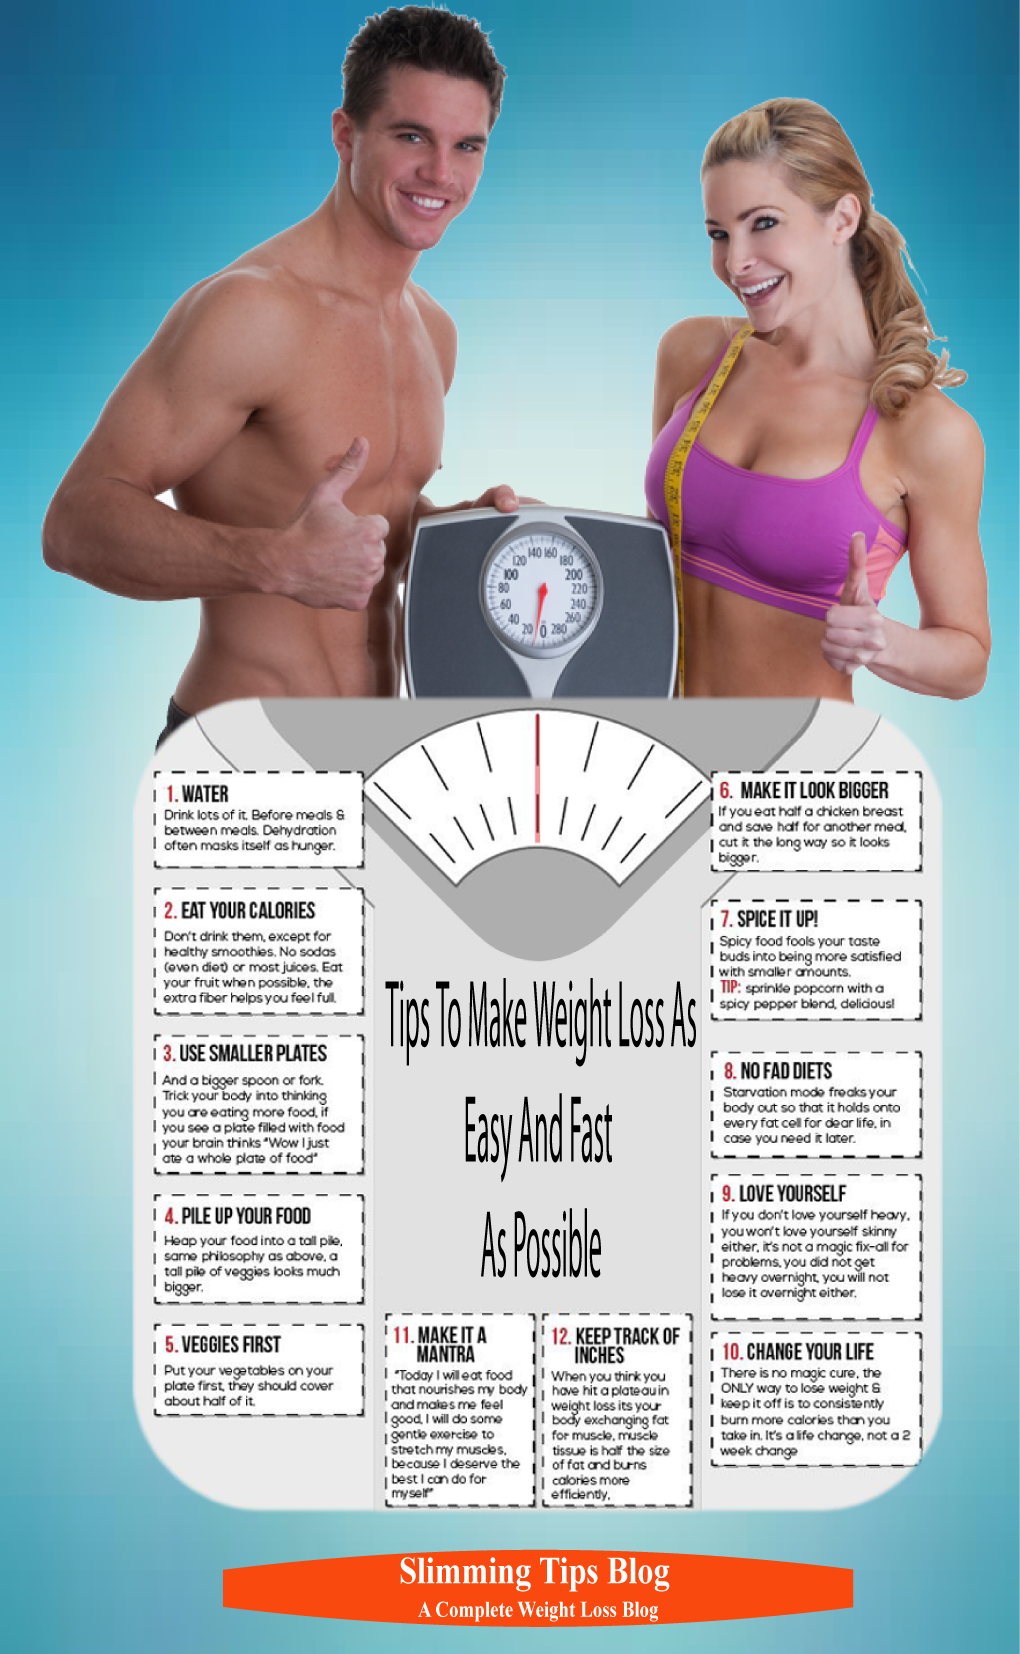 How To Lose Weight In 7 Days Without Exercise Fast Tips